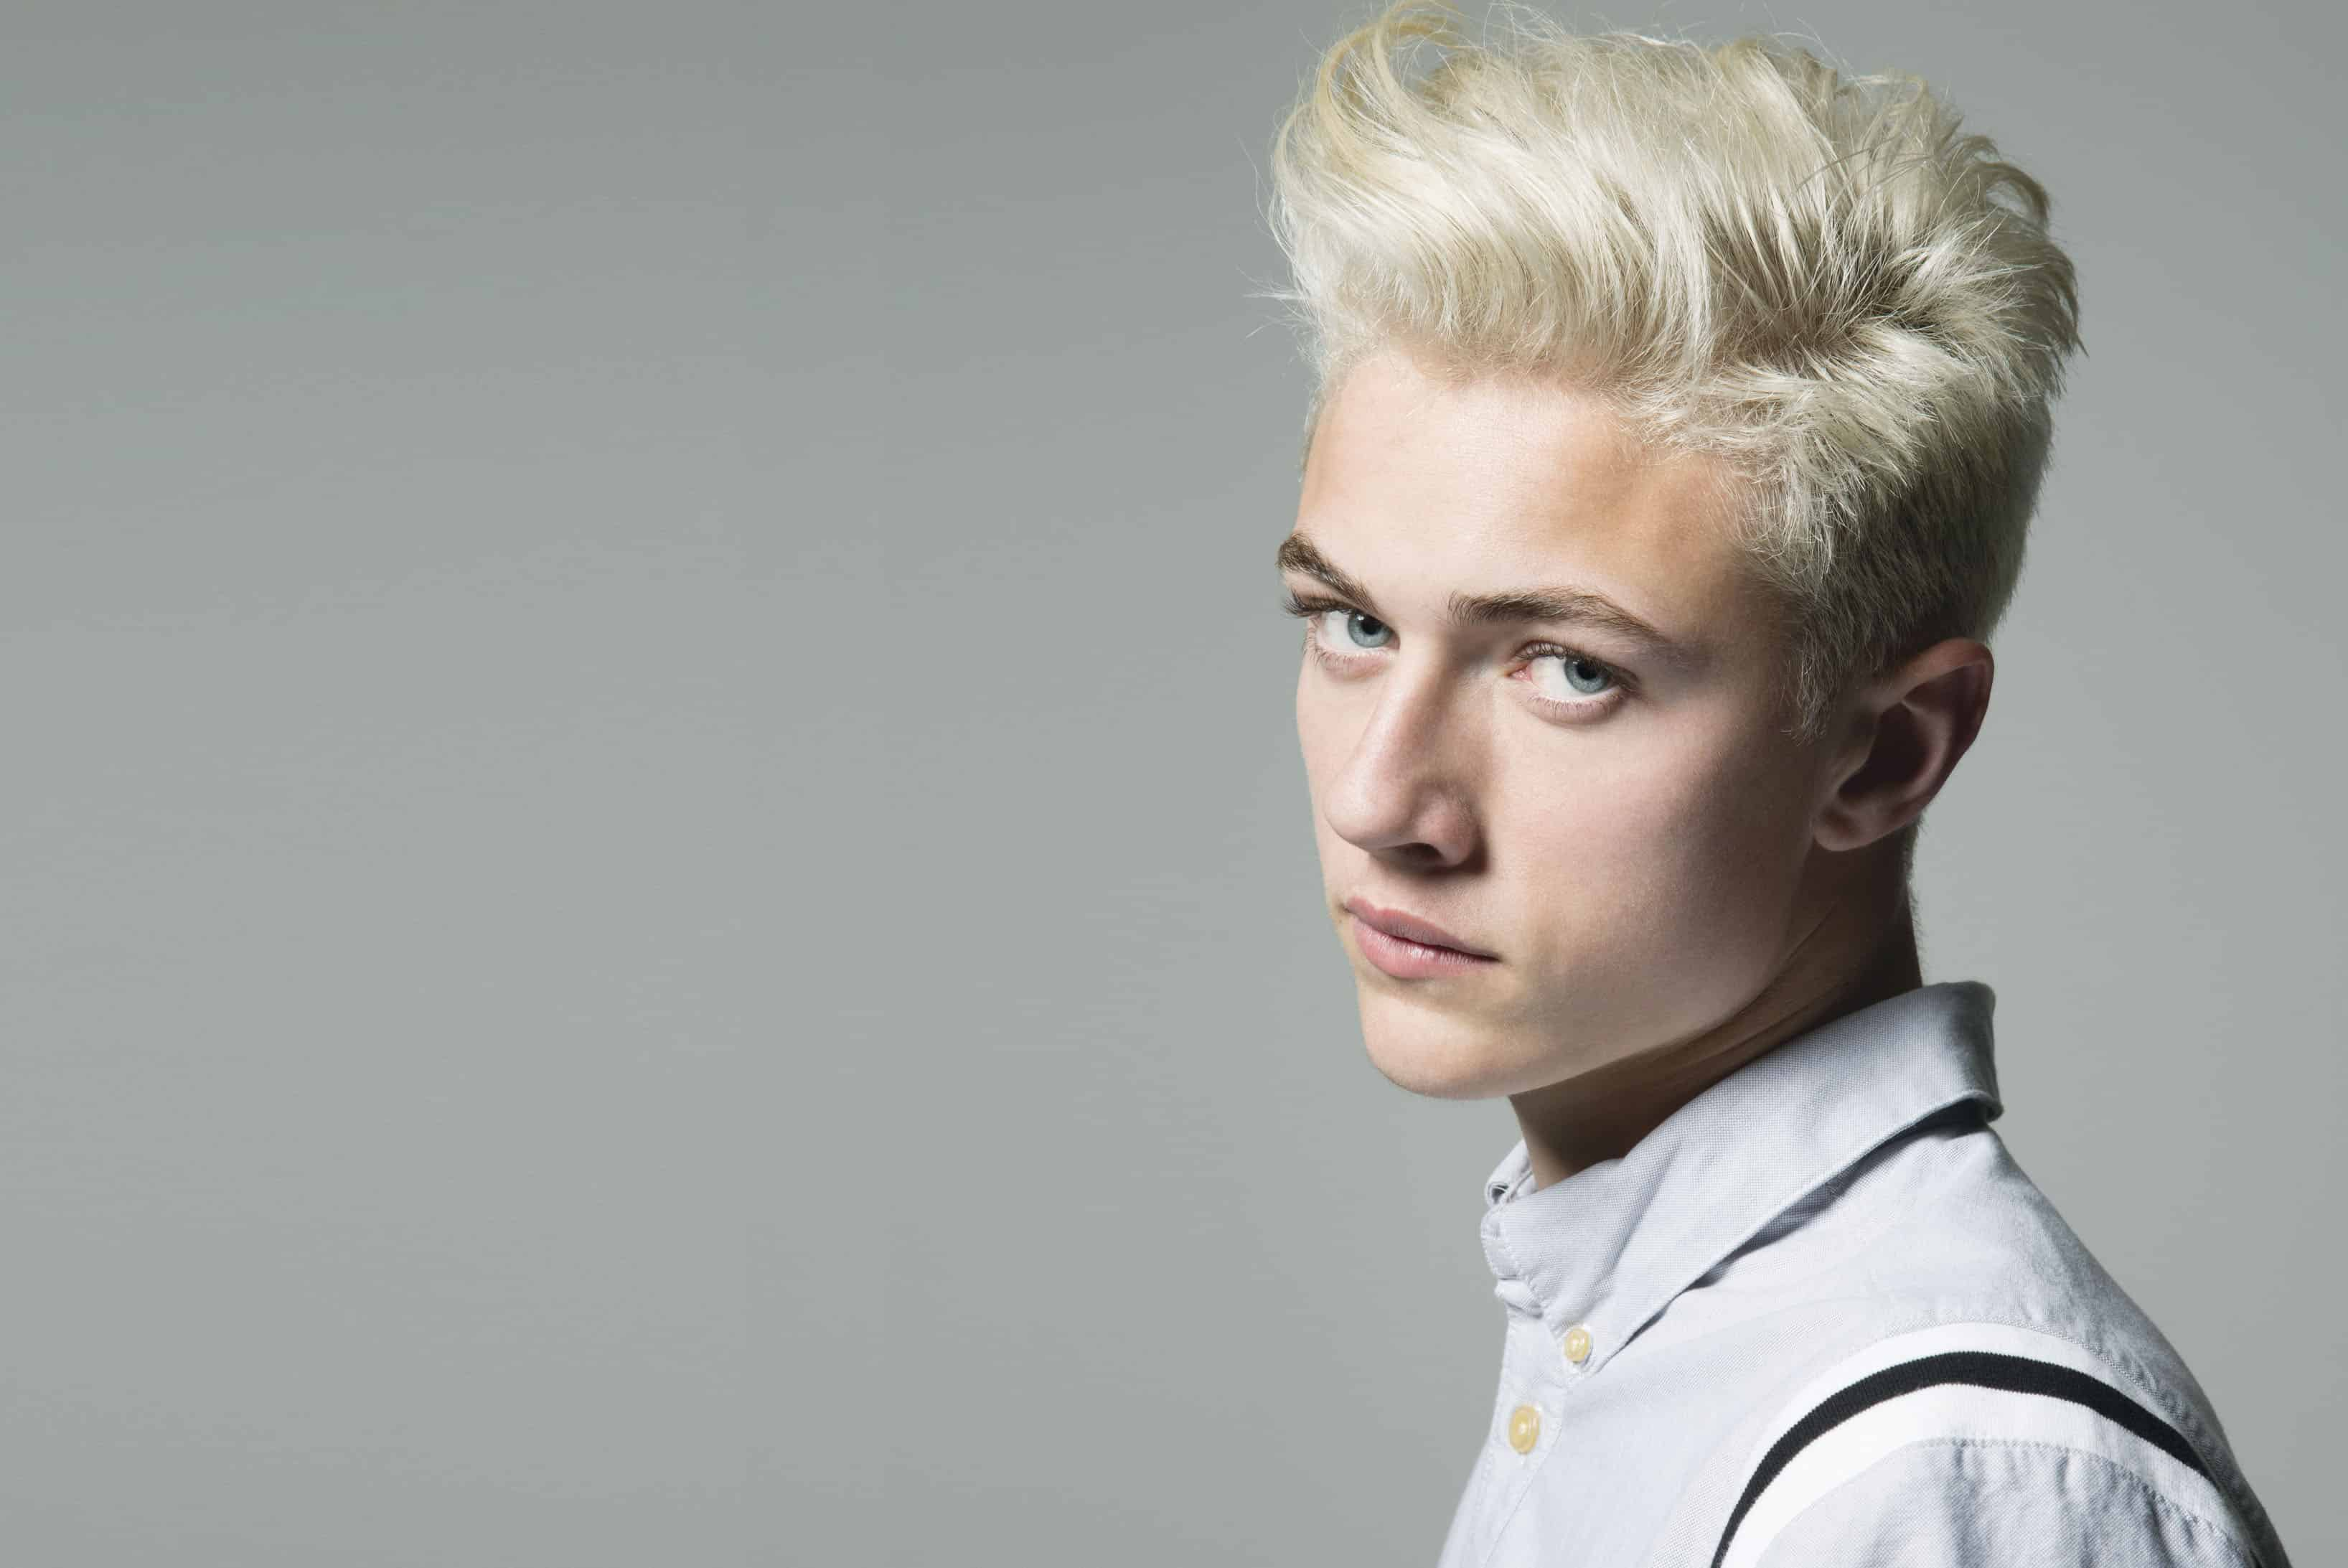 Cute Stylish Child Girl Wallpaper 80 Stunning Bleached Hair For Men How To Care At Home